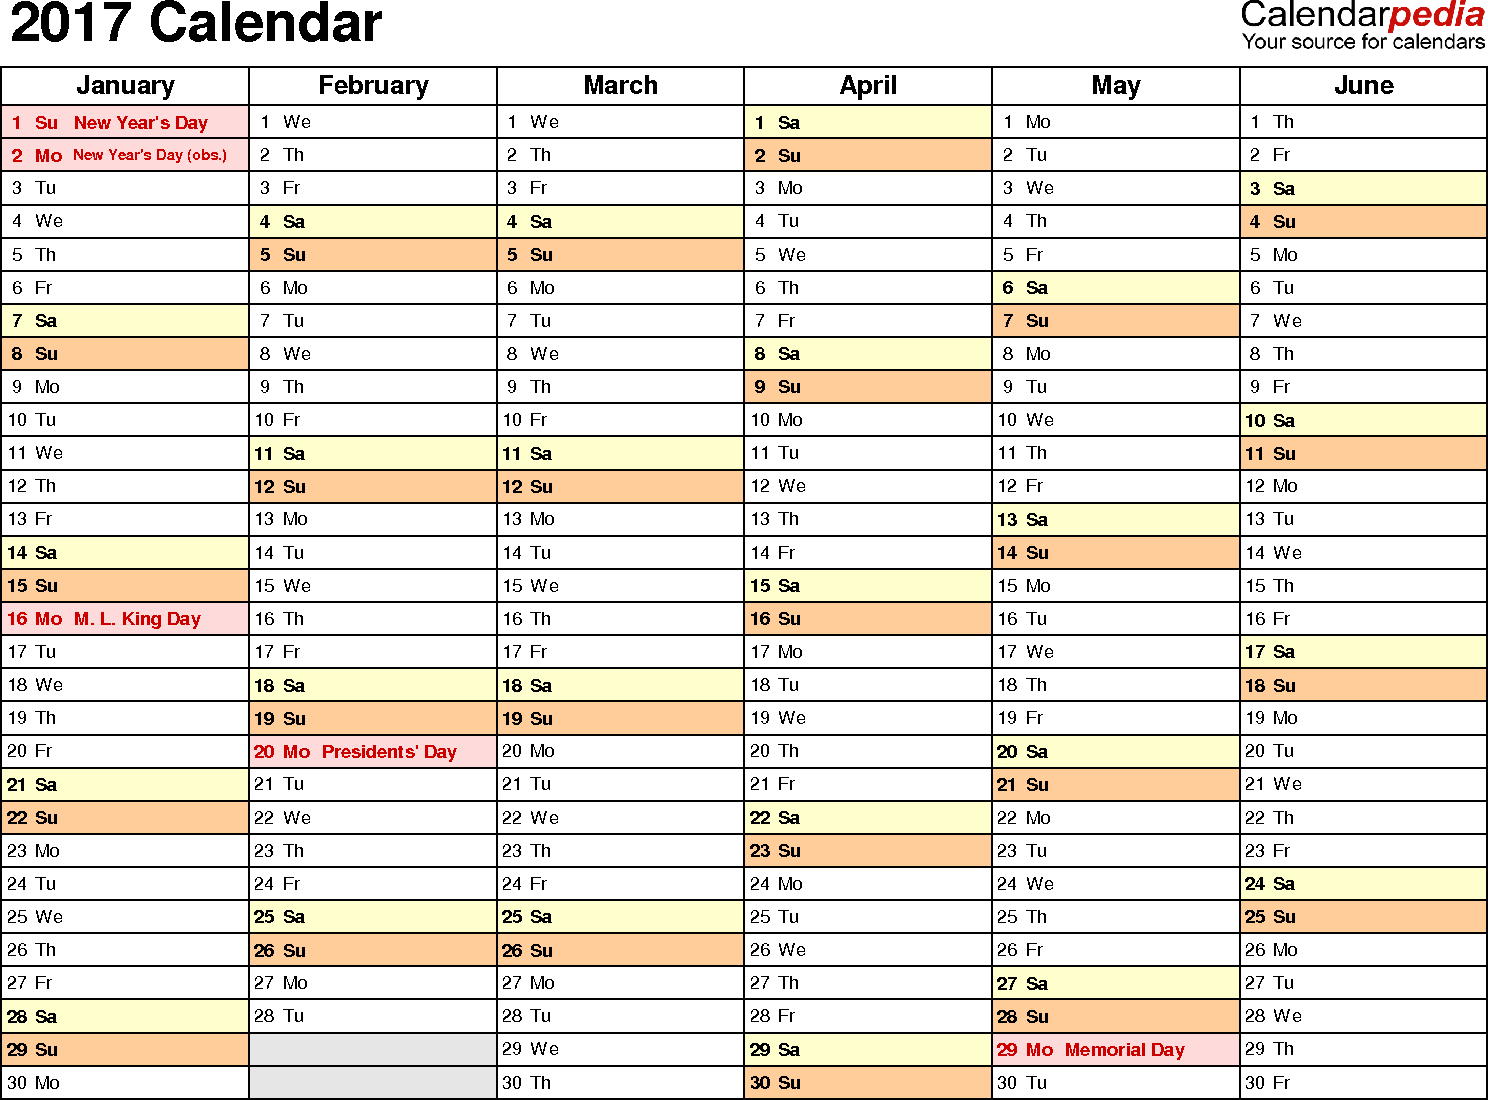 Ediblewildsus  Wonderful  Calendar  Download  Free Printable Excel Templates Xls With Excellent Template   Calendar For Excel Months Horizontally  Pages Landscape Orientation With Alluring Monthly Budget Spreadsheet Template Excel Also Issues Log Template Excel In Addition Excel Income And Expense Template And Constant Excel As Well As Where Is The If Function In Excel Additionally Insanity Workout Calendar Excel From Calendarpediacom With Ediblewildsus  Excellent  Calendar  Download  Free Printable Excel Templates Xls With Alluring Template   Calendar For Excel Months Horizontally  Pages Landscape Orientation And Wonderful Monthly Budget Spreadsheet Template Excel Also Issues Log Template Excel In Addition Excel Income And Expense Template From Calendarpediacom